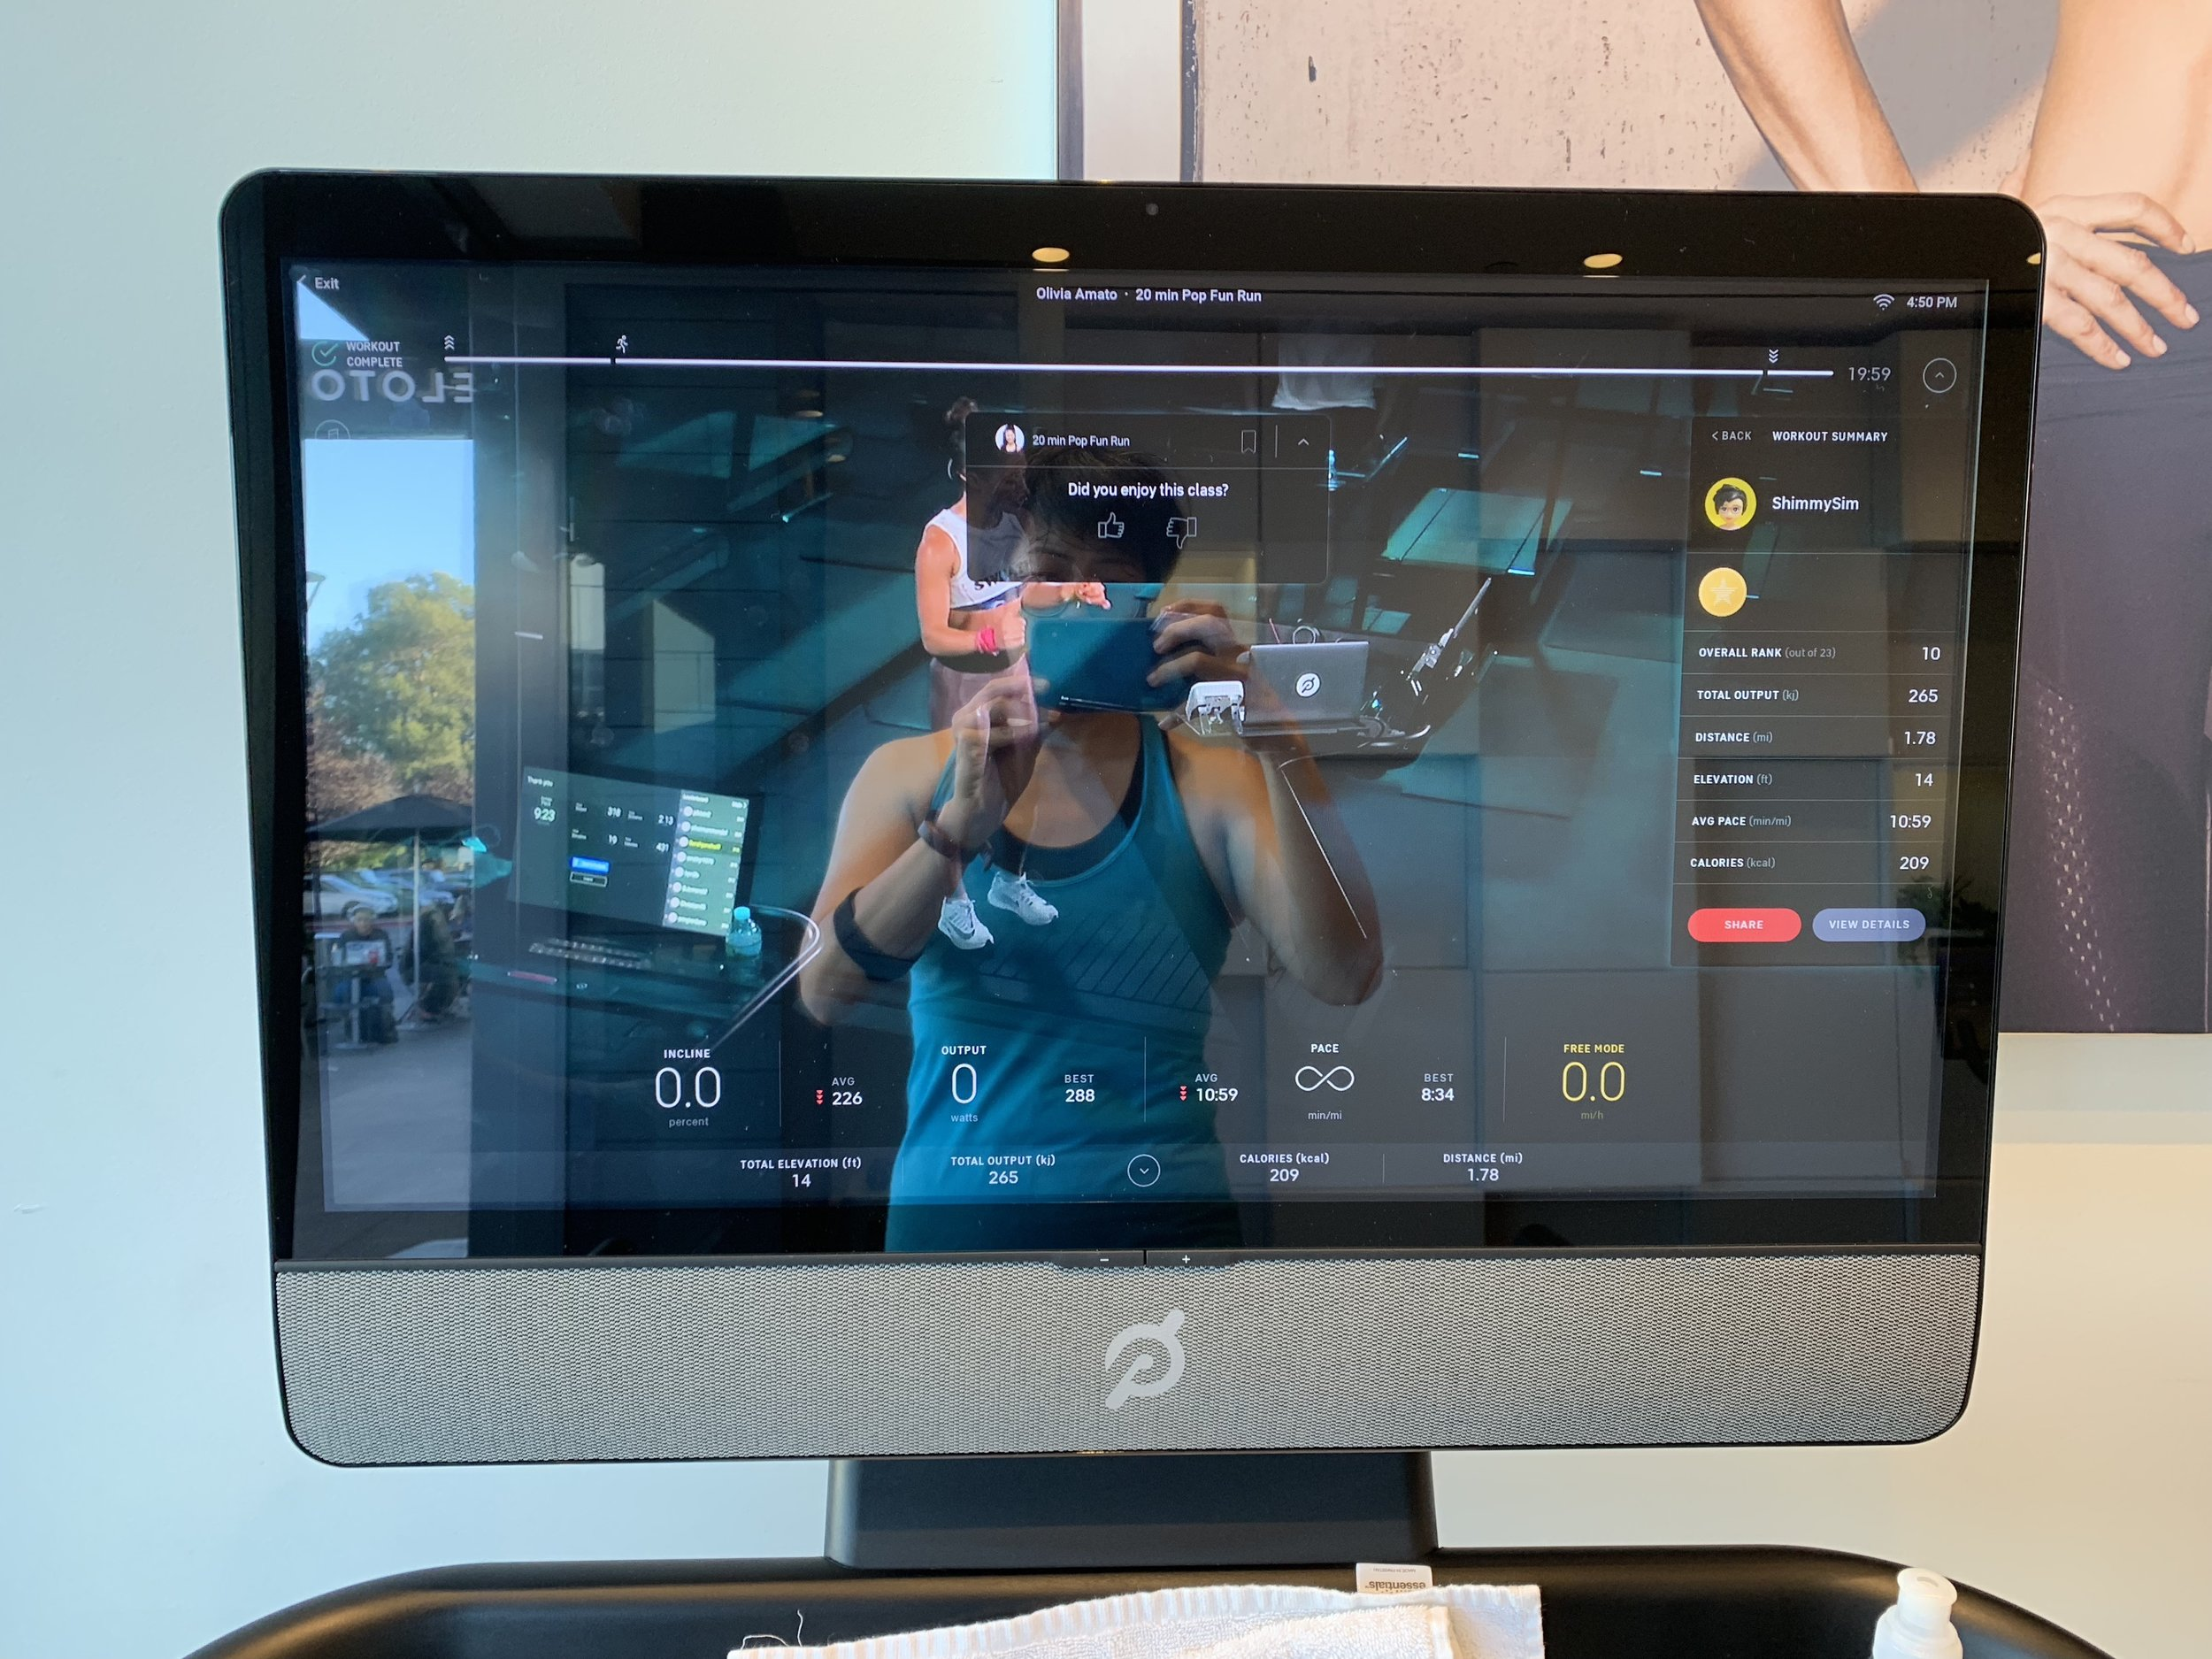 Content is king - I used to rely heavily on Netflix to get me through a treadmill run. Now, I actually look forward to running. Why? The music, leaderboard, metrics, coaching (Olivia Amato!) and community all make me want to show up for a run. Who am I???Content/Instructor: 10/10